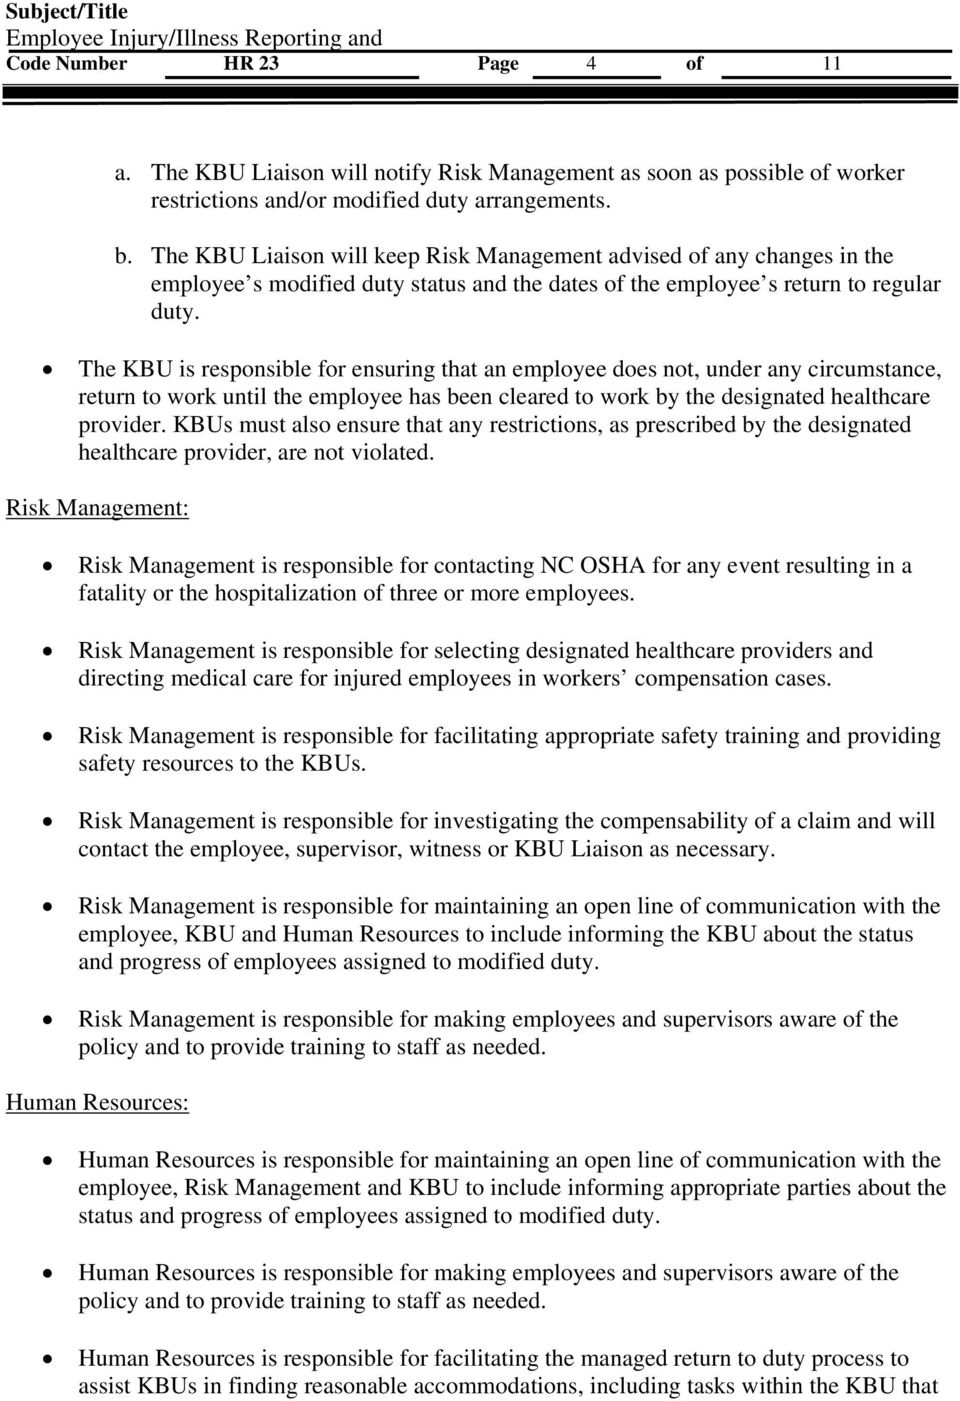 The KBU is responsible for ensuring that an employee does not, under any circumstance, return to work until the employee has been cleared to work by the designated healthcare provider.